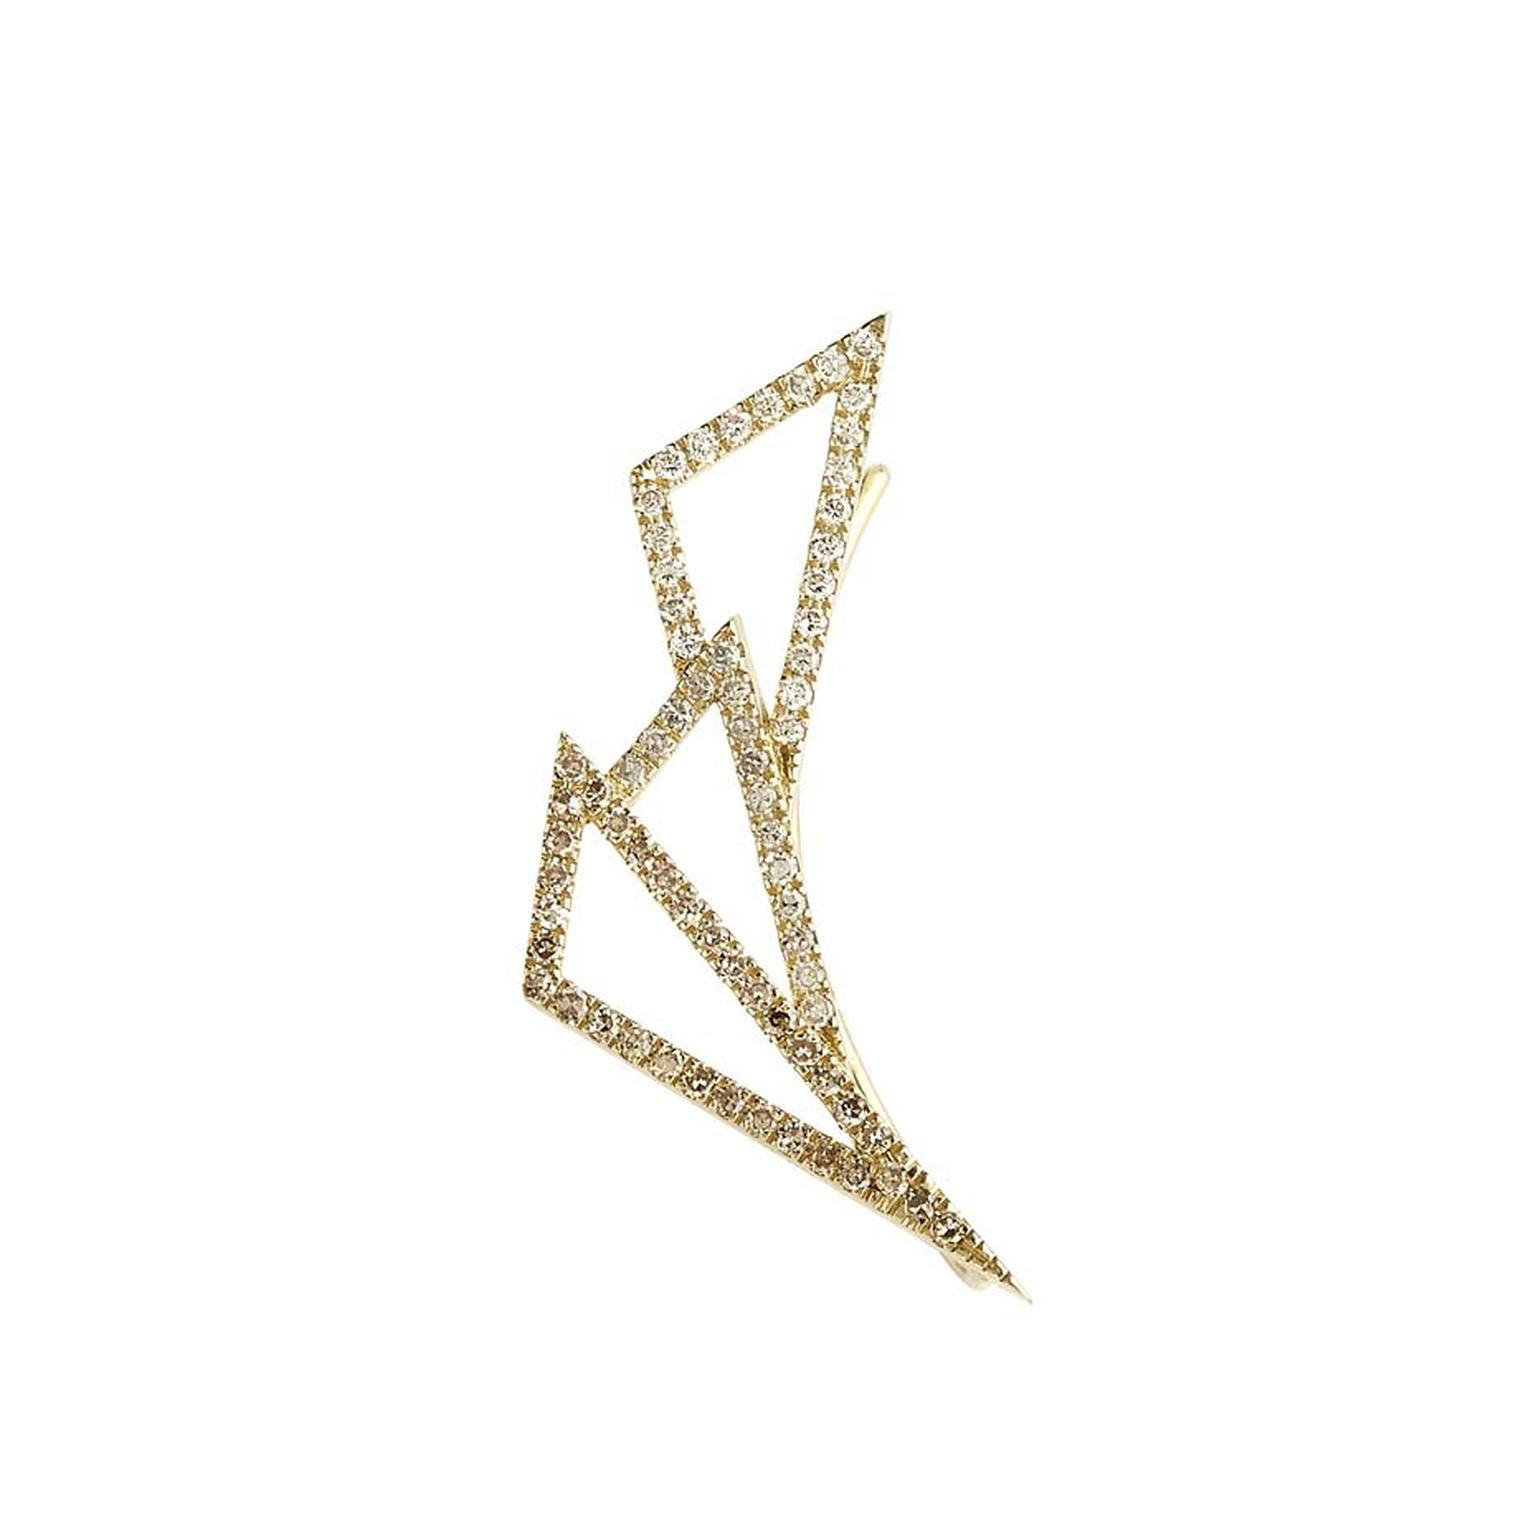 Lito Daisy single earring in yellow gold with white, grey and brown diamonds.